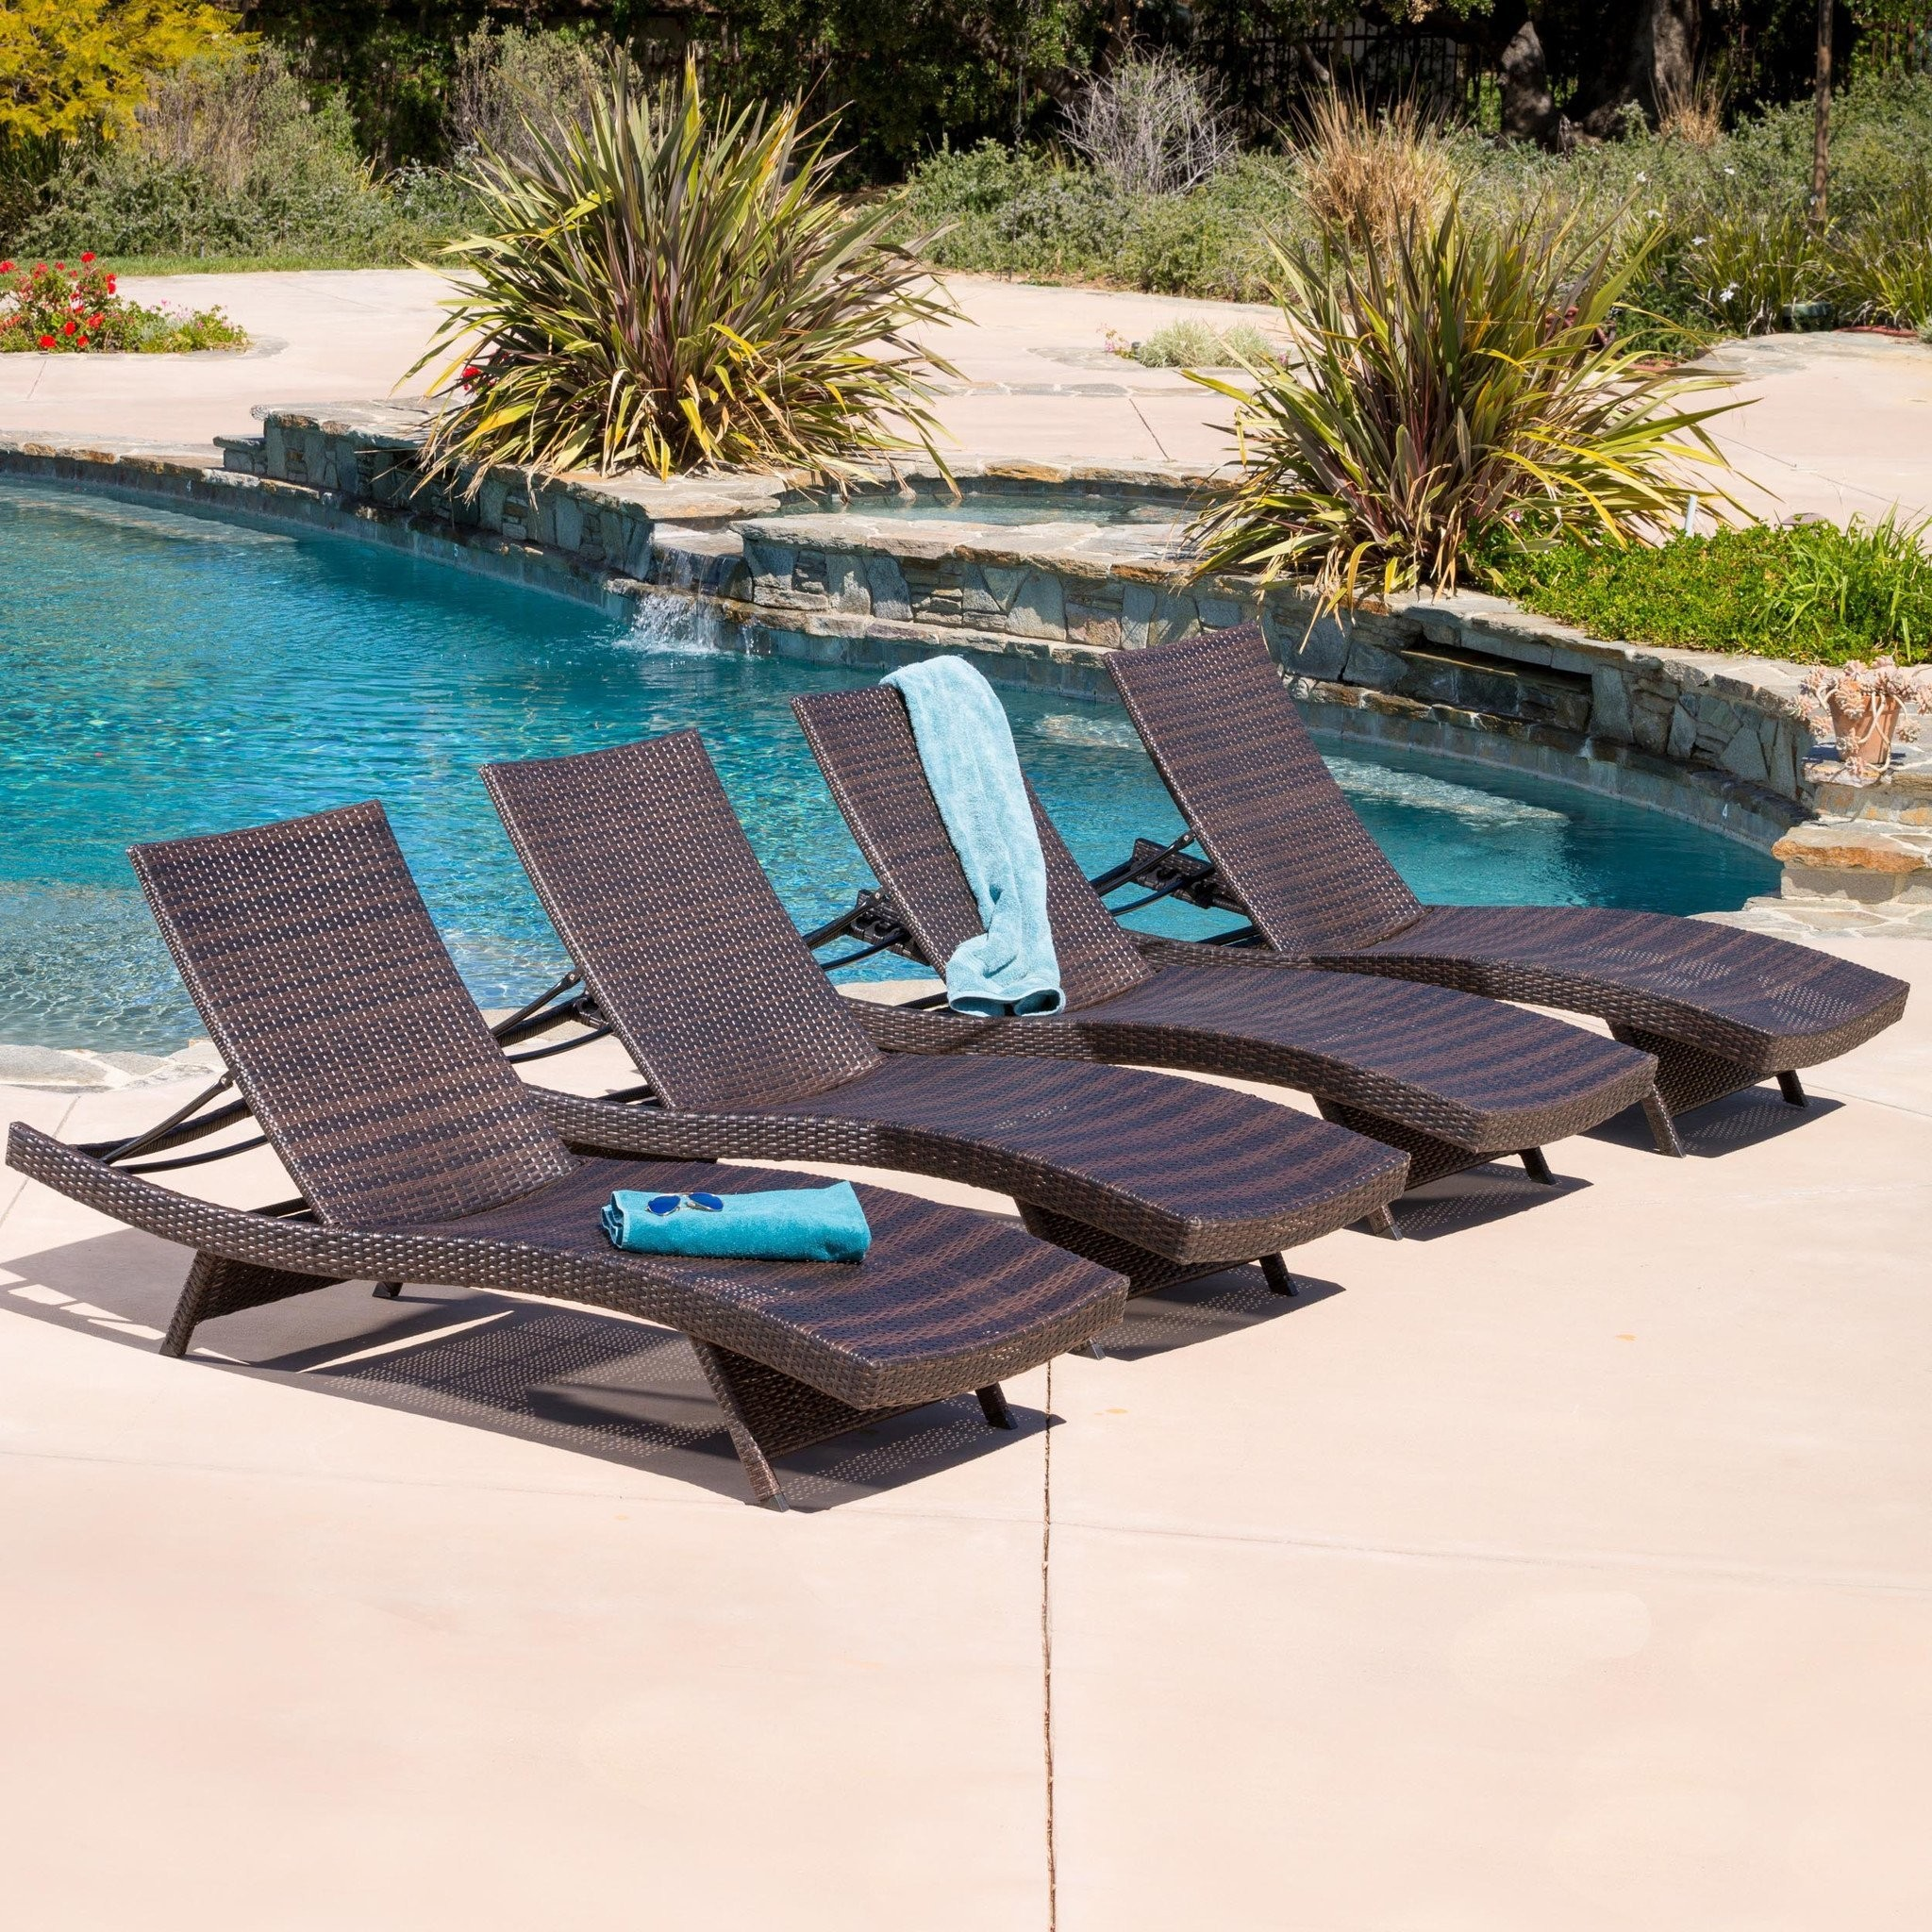 Lakeport Outdoor Adjustable Chaise Lounge Chairs (...